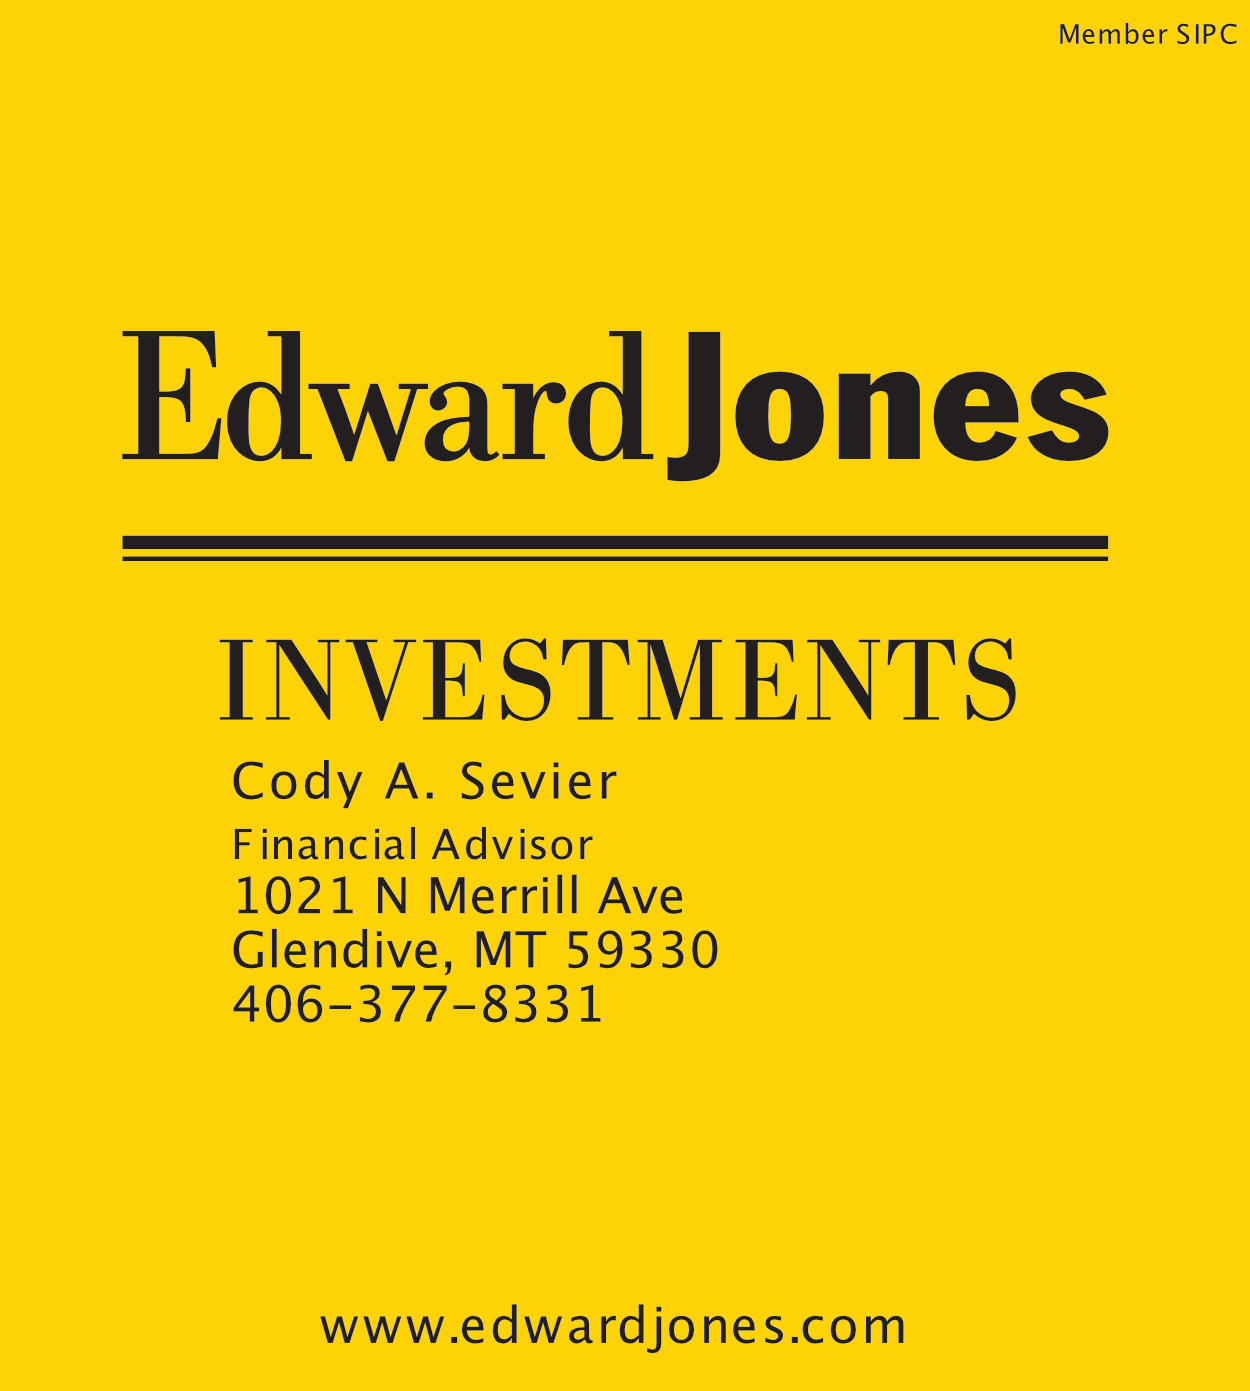 Edward Jones - Cody Sevier